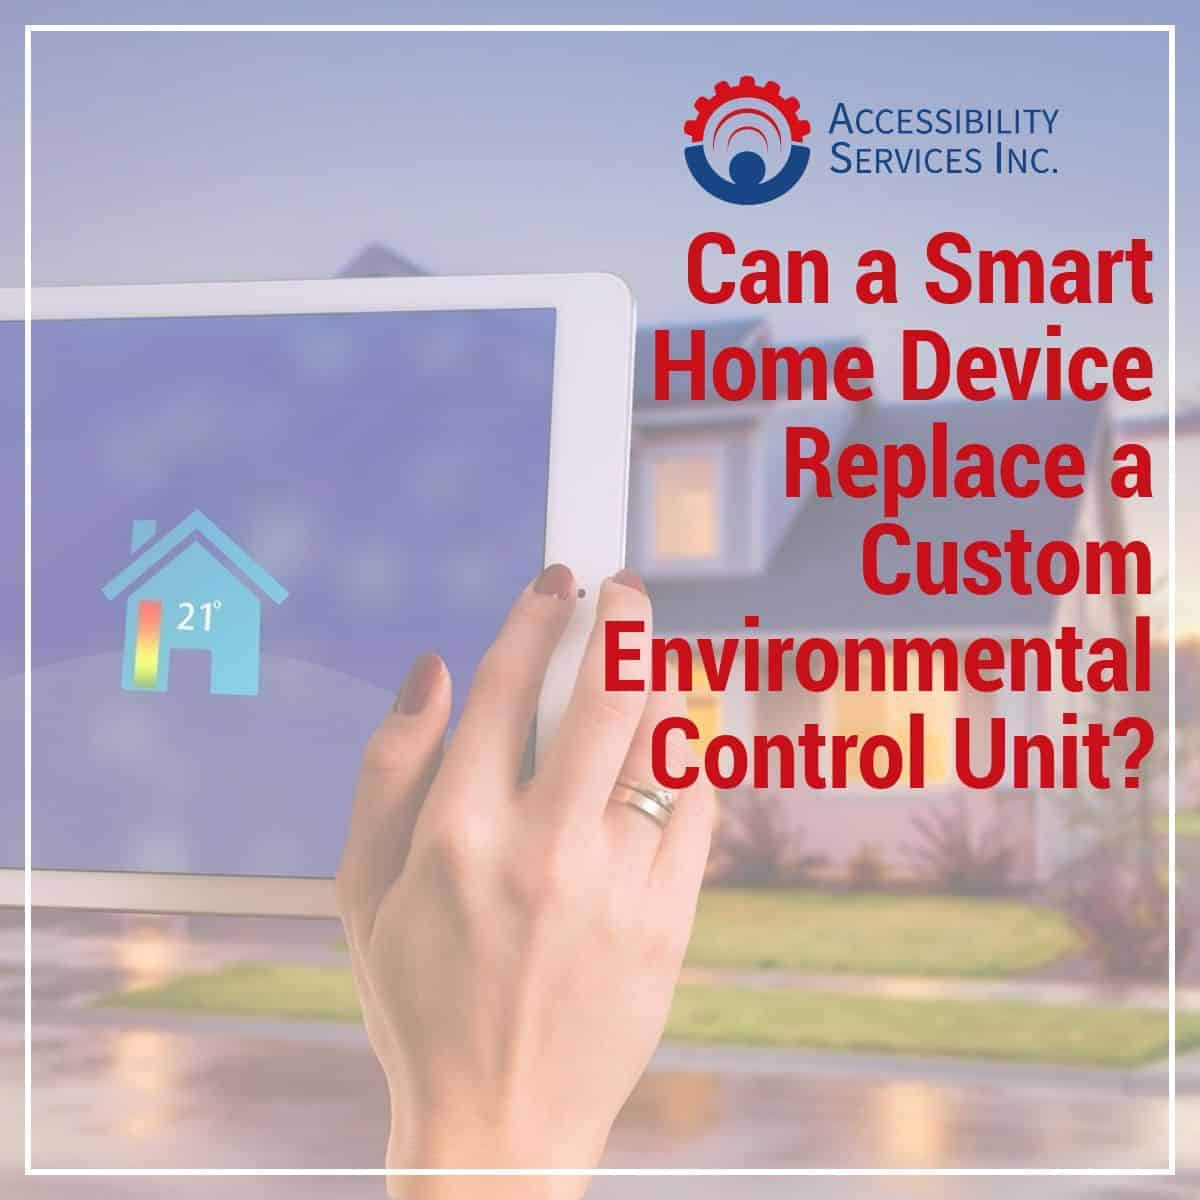 Can a Smart Home Device Replace a Custom Environmental Control Unit?